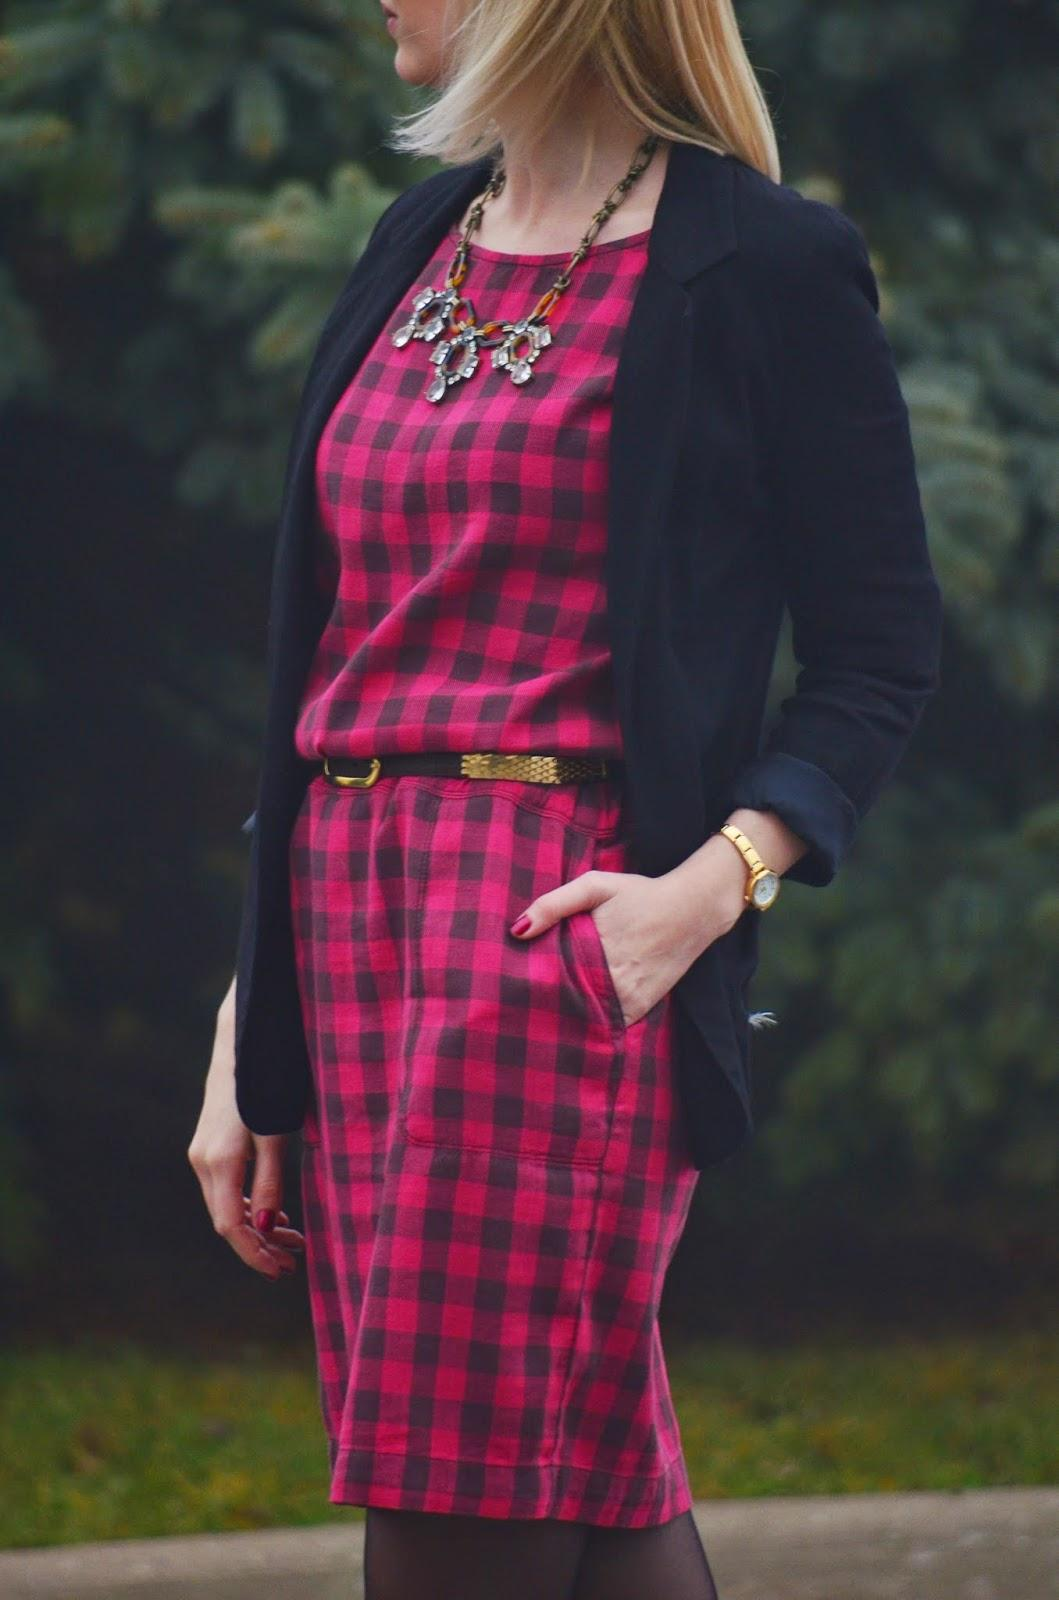 Style, ootd, Buffalo Plaid, Plaid, plaid dress, Dress, office style, Gap, Aldo, Aritzia, La Mer Collections, plaid dress style, preppy, preppy style